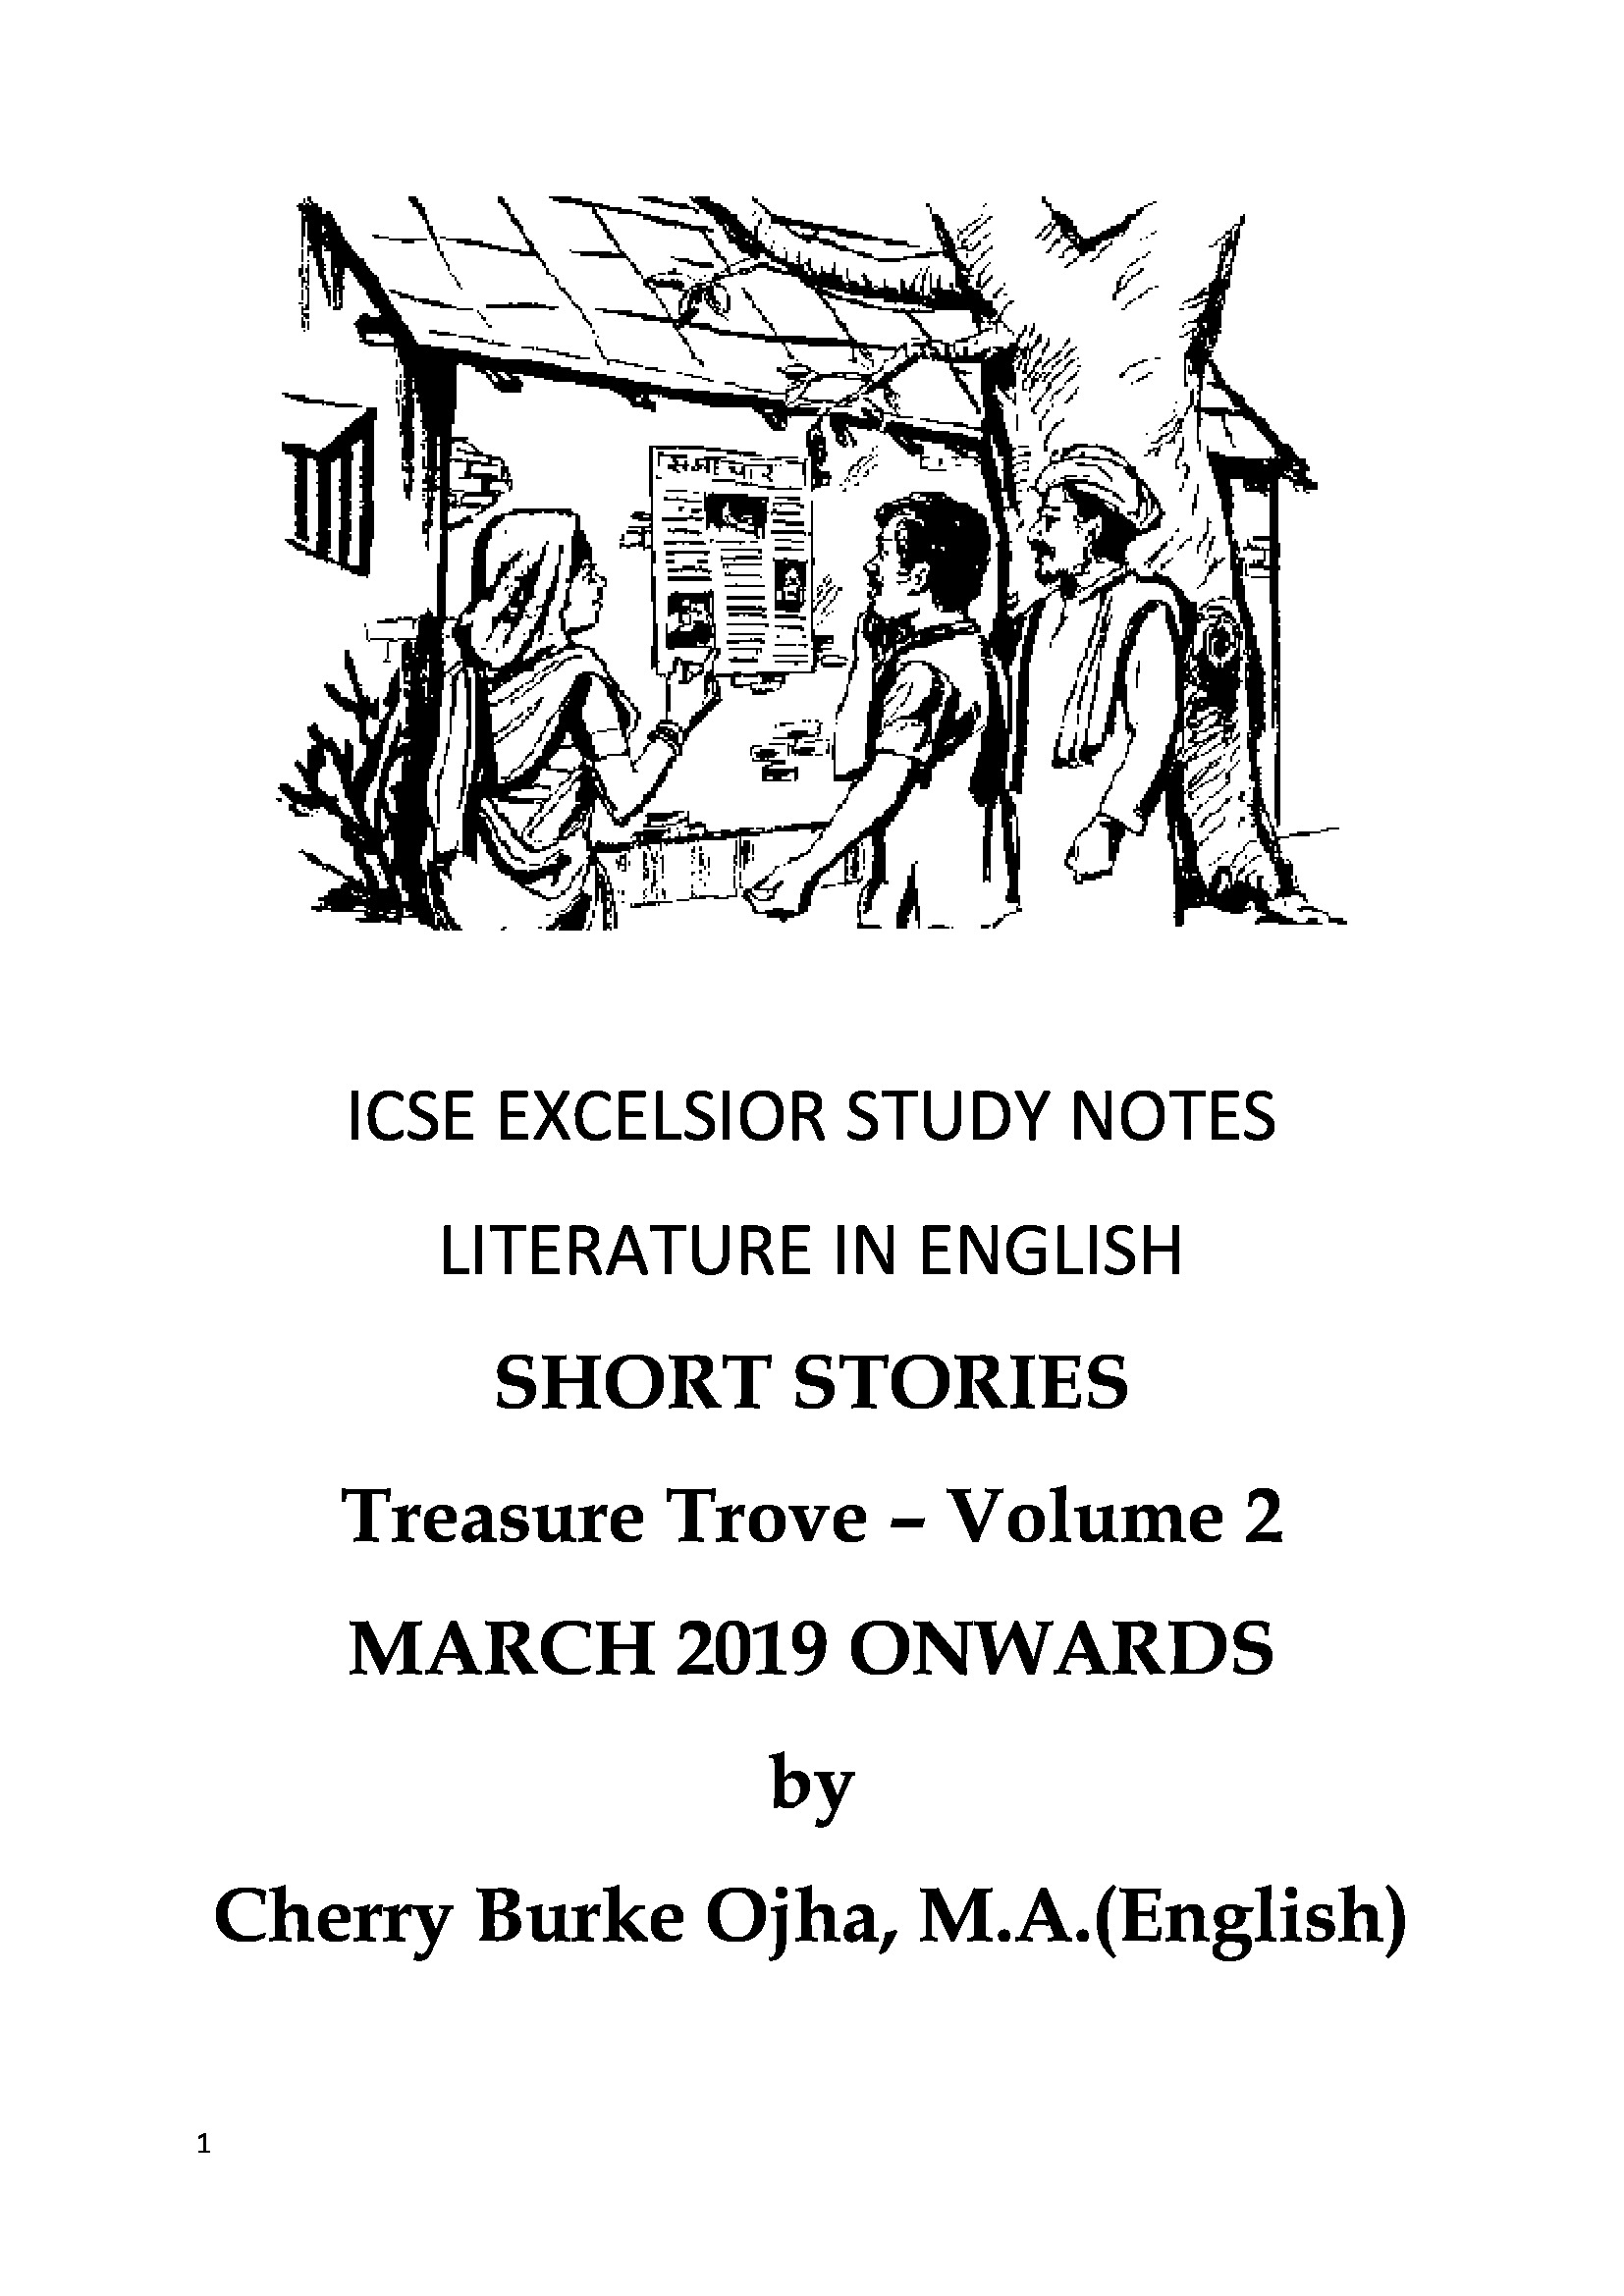 ICSE EXCELSIOR STUDY NOTES LITERATURE IN ENGLISH SHORT